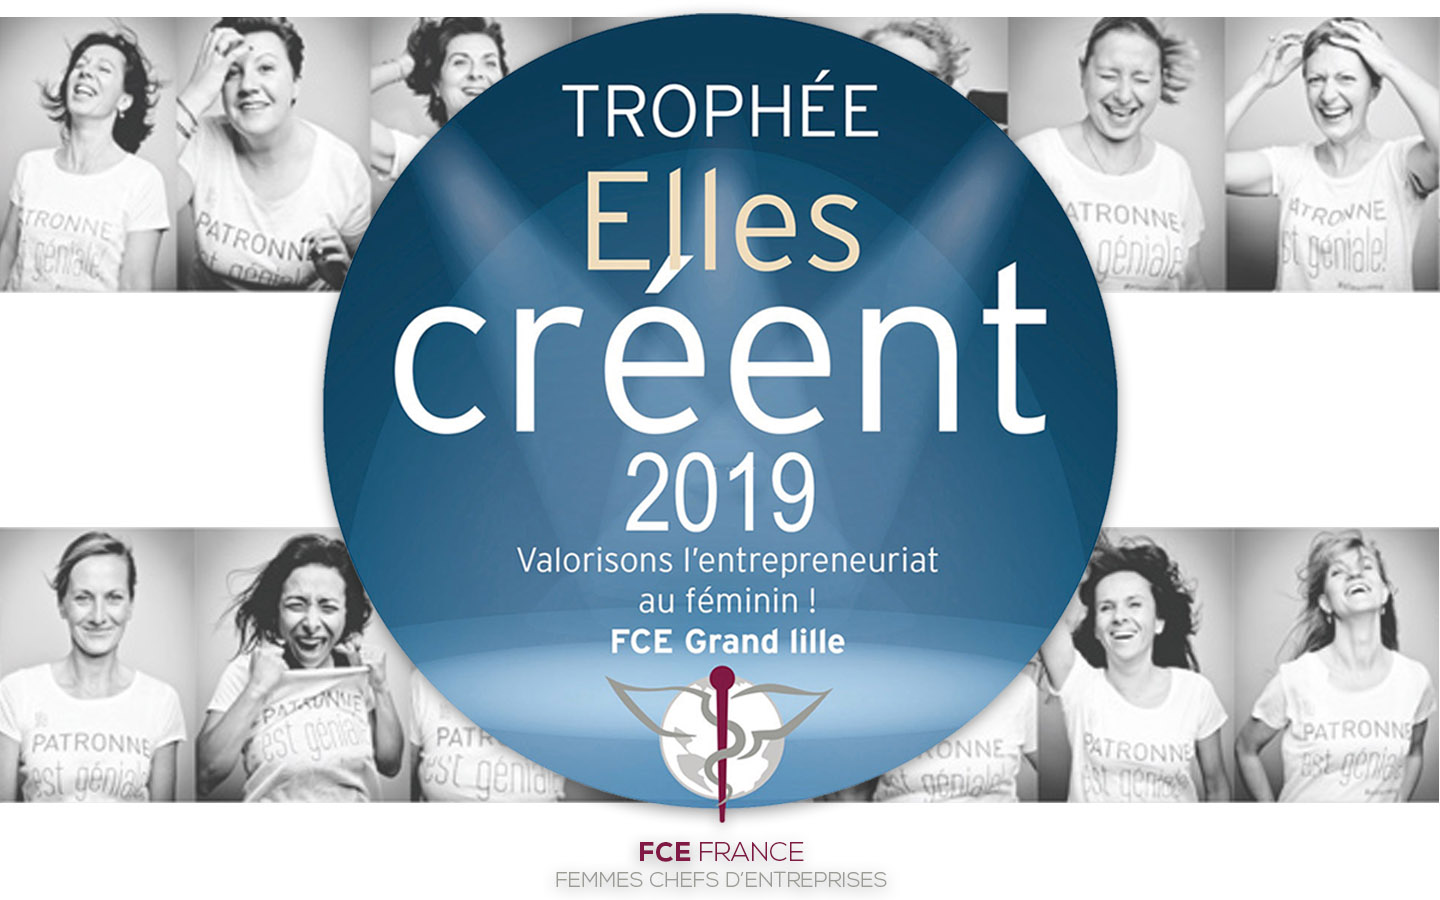 Trophée Elles Créent: Promoting women's entrepreneurship